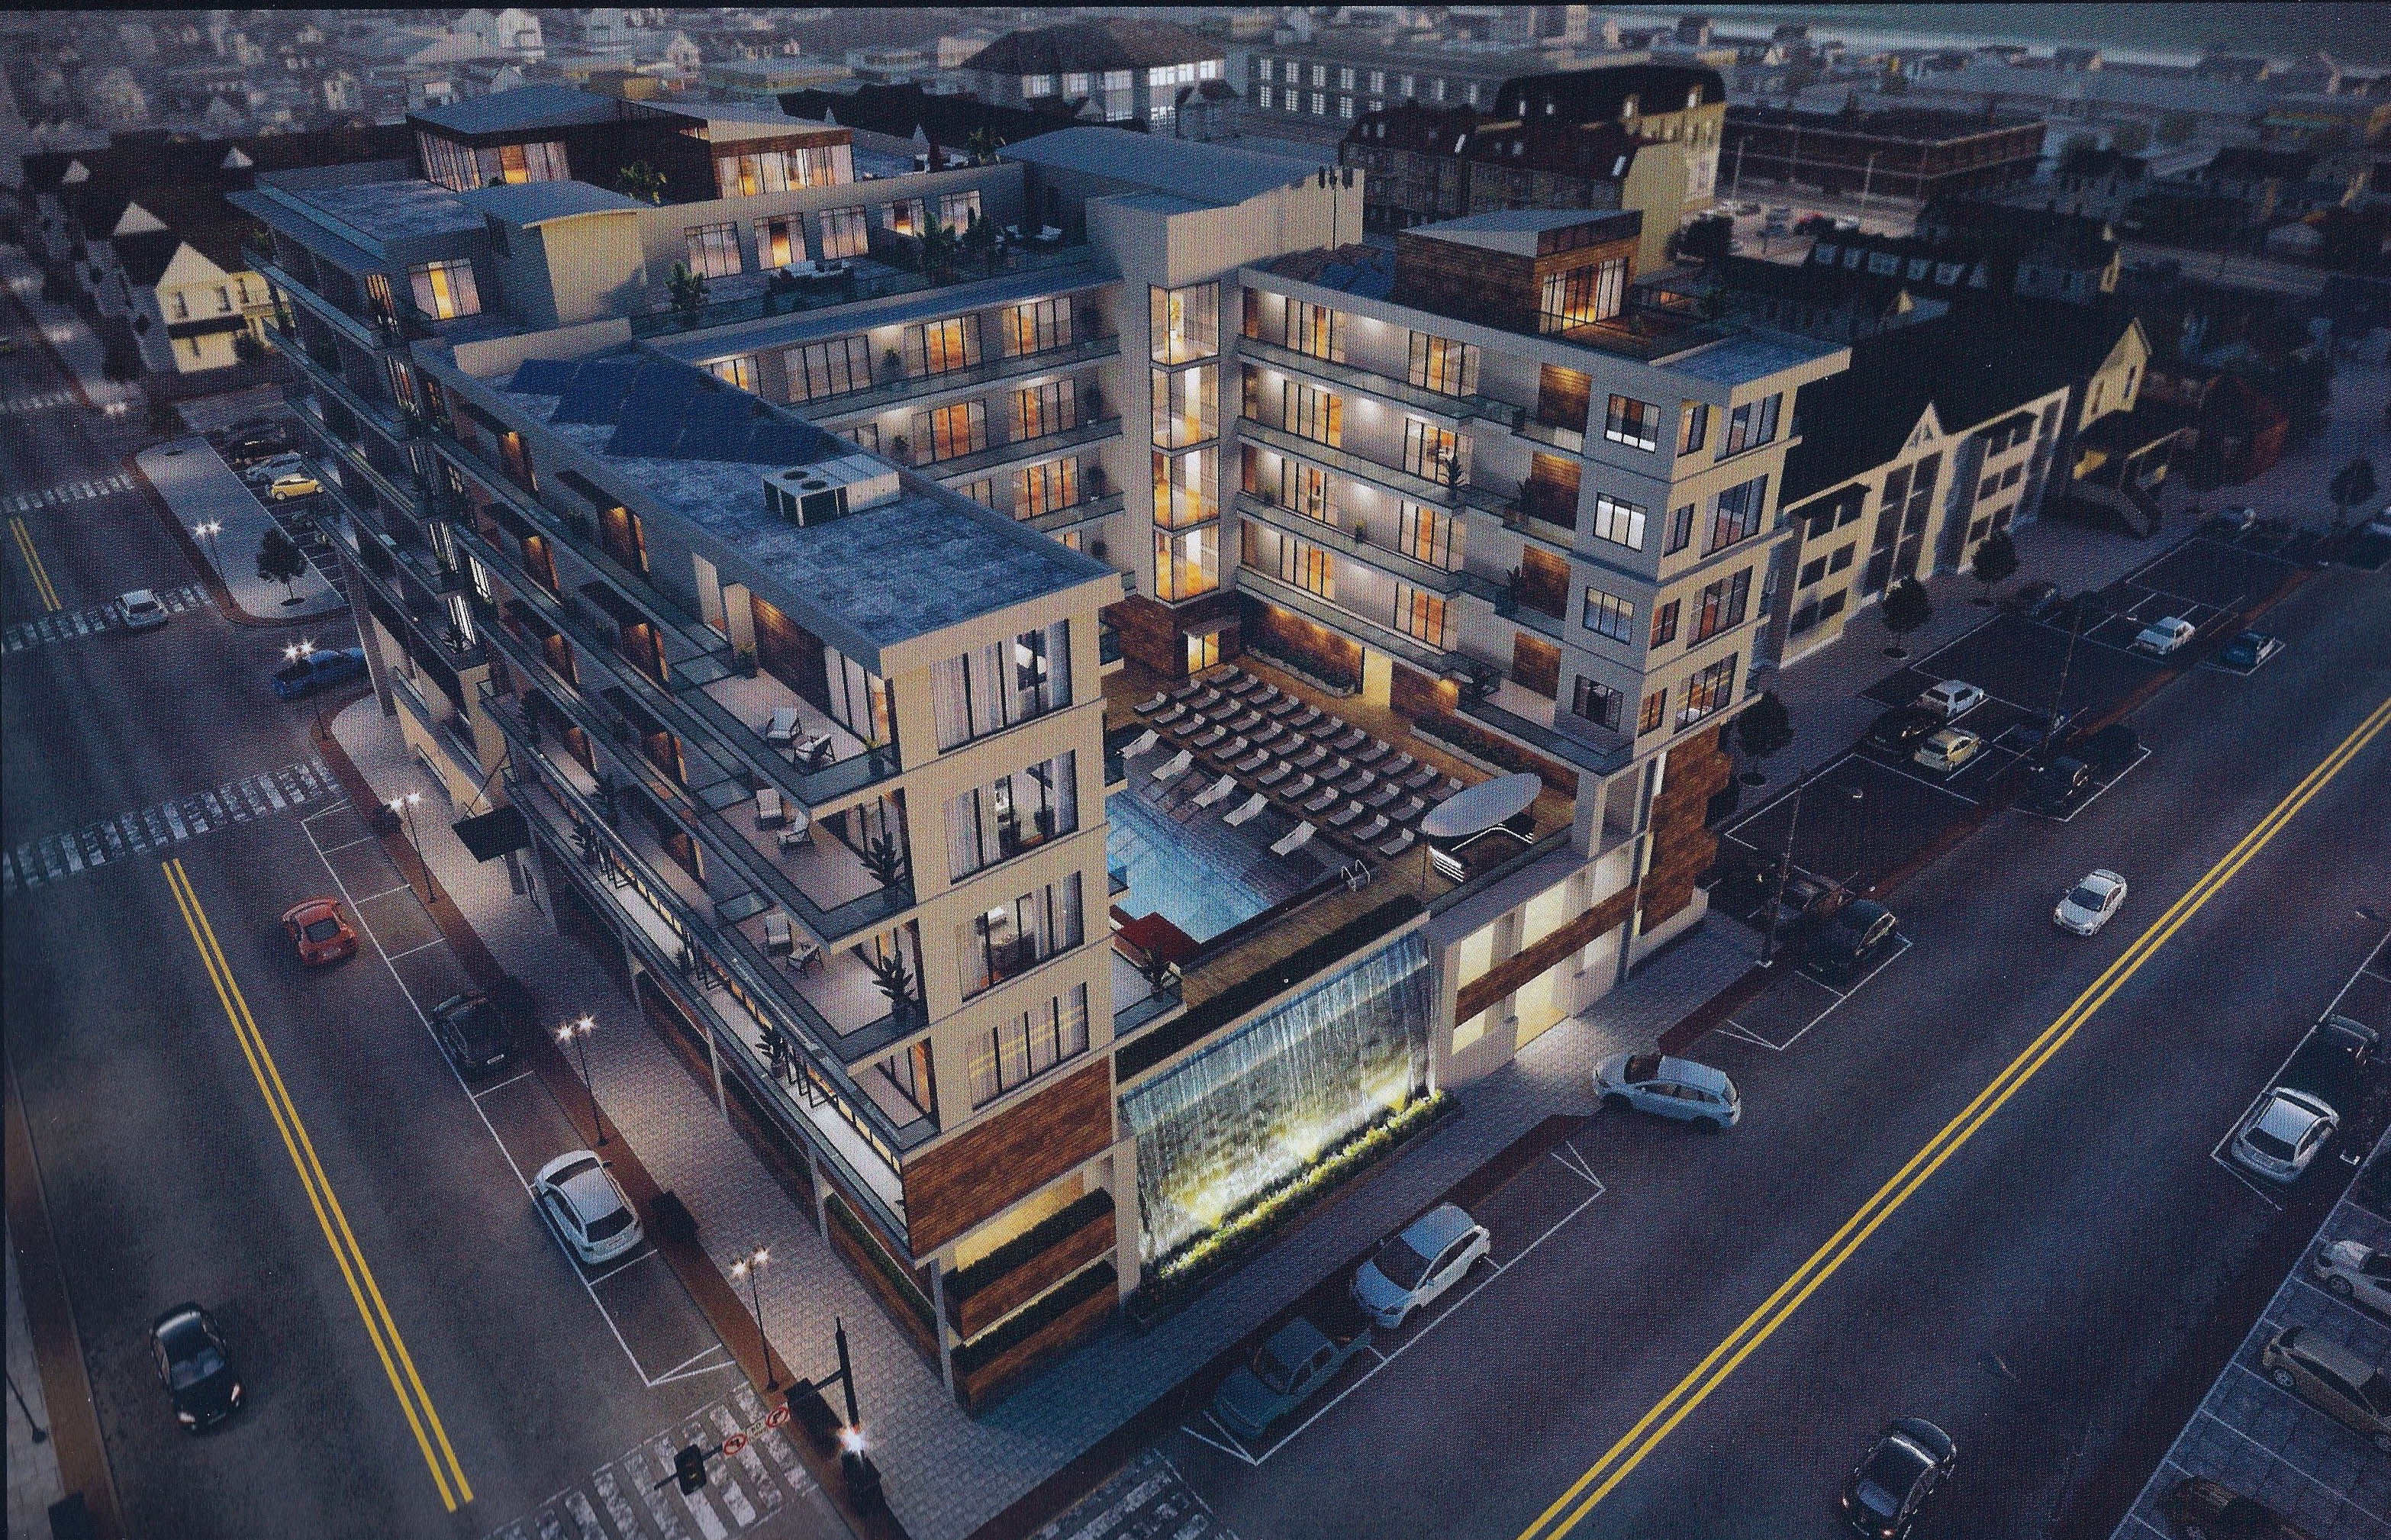 A proposed mixed-use property to replace the 'steel structure' in Seaside Heights. (Photo: Daniel Nee)